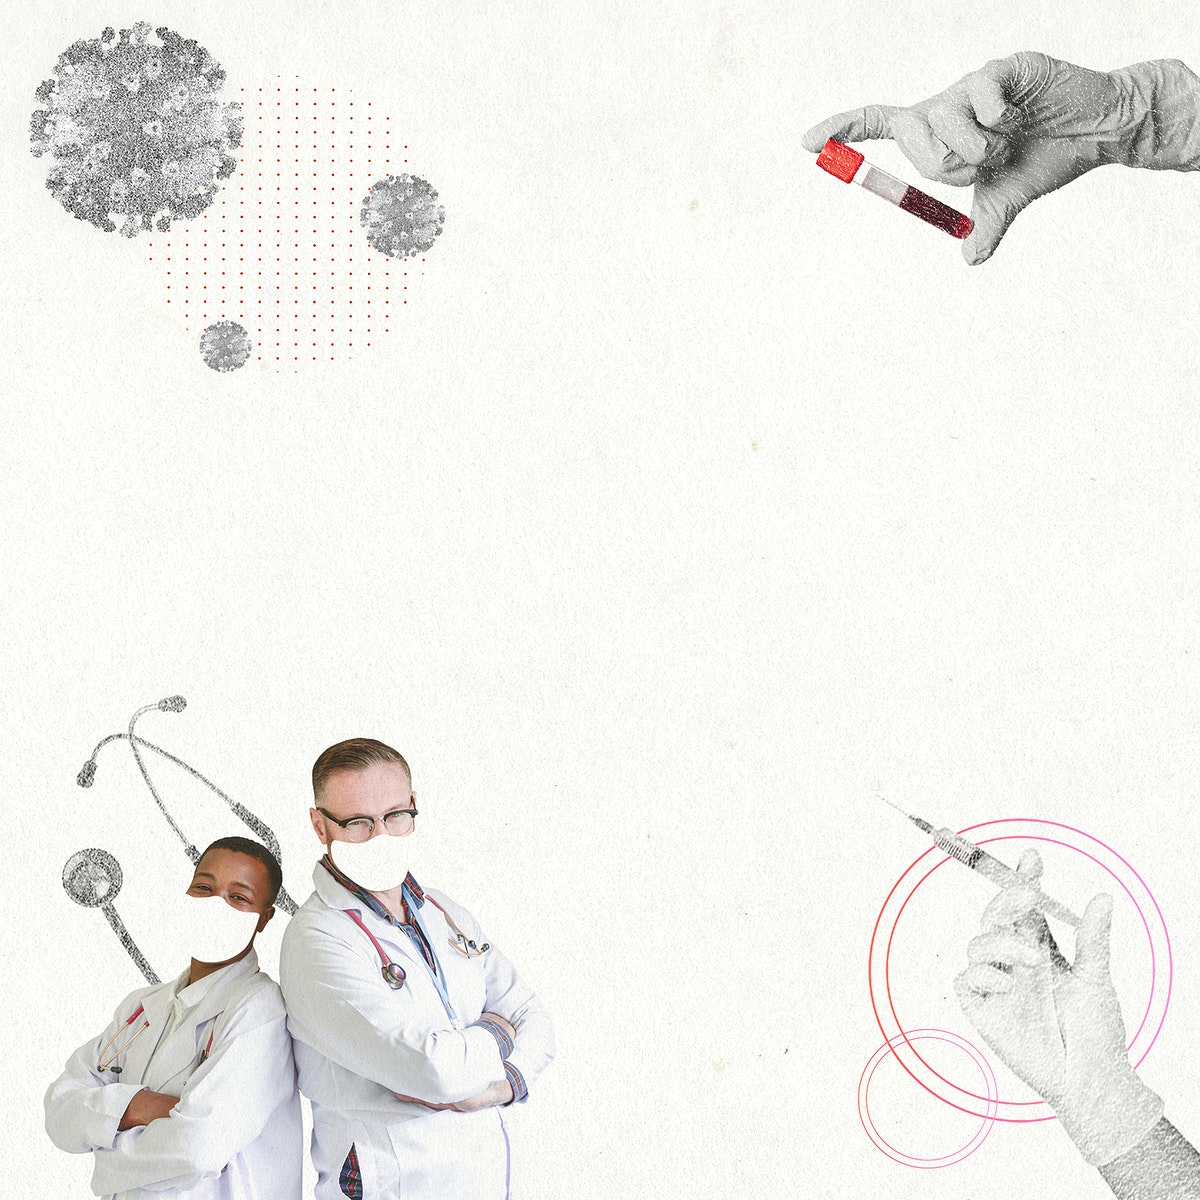 Frontline healthcare workers background psd